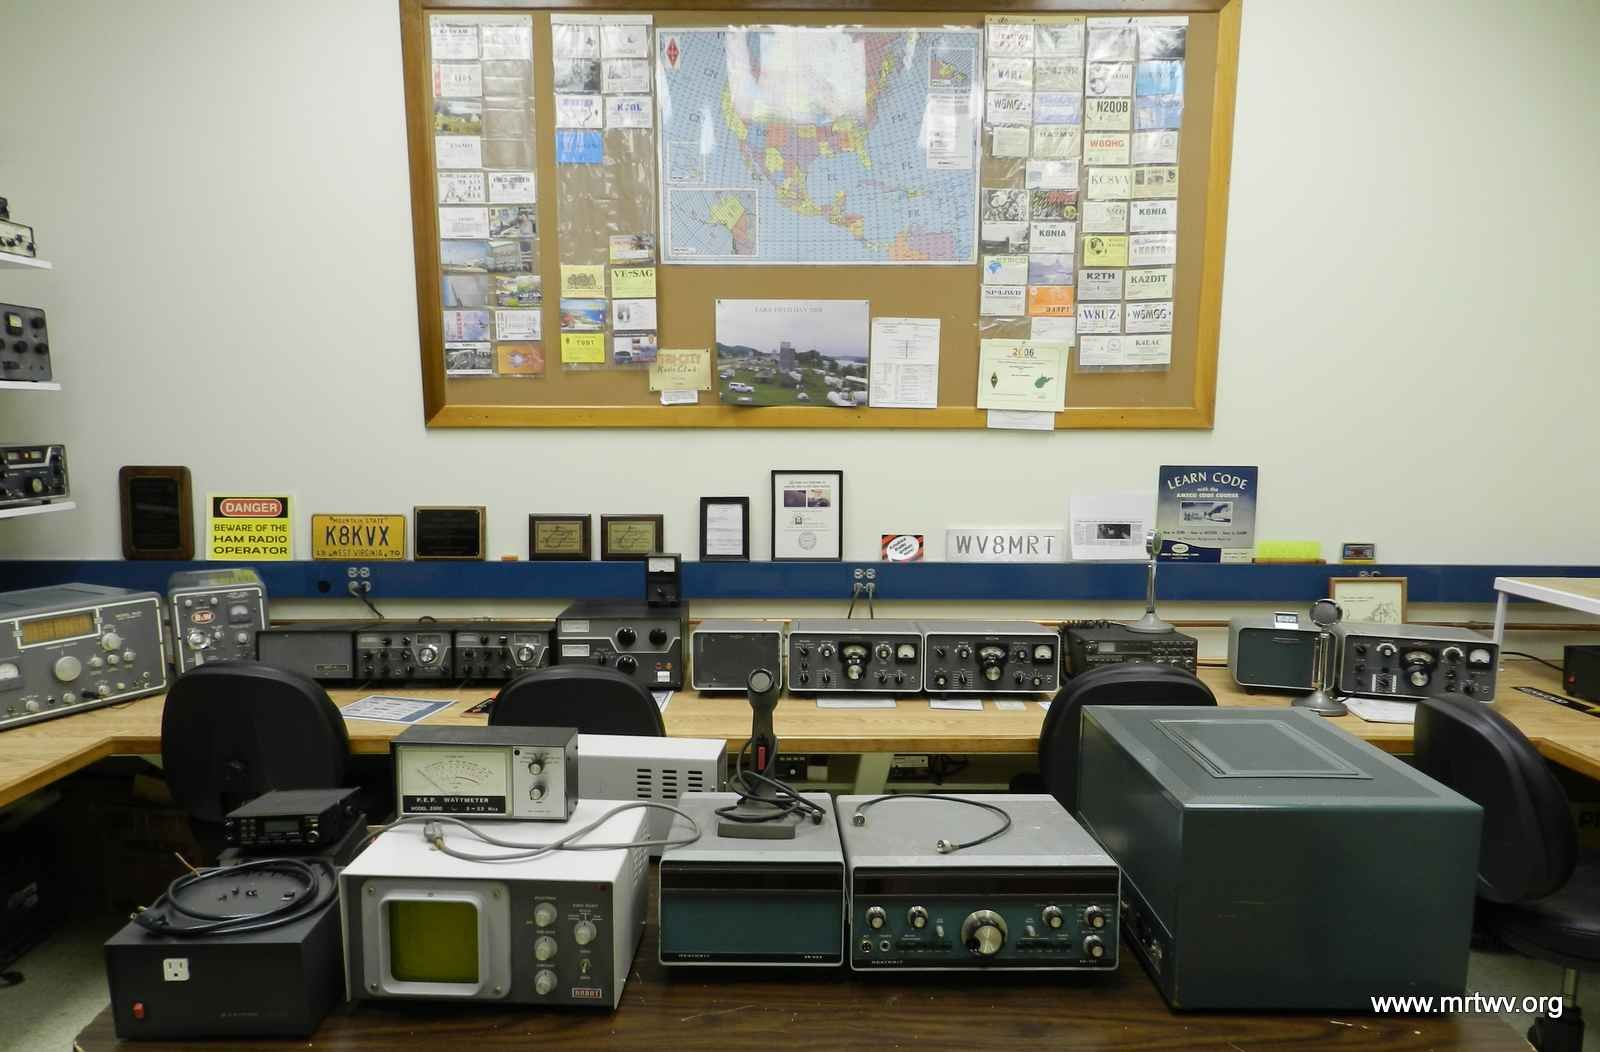 The museum includes a fully functioning HAM radio set, available for anyone with a amateur radio license to use. Image obtained from the Museum of Radio and Technology.